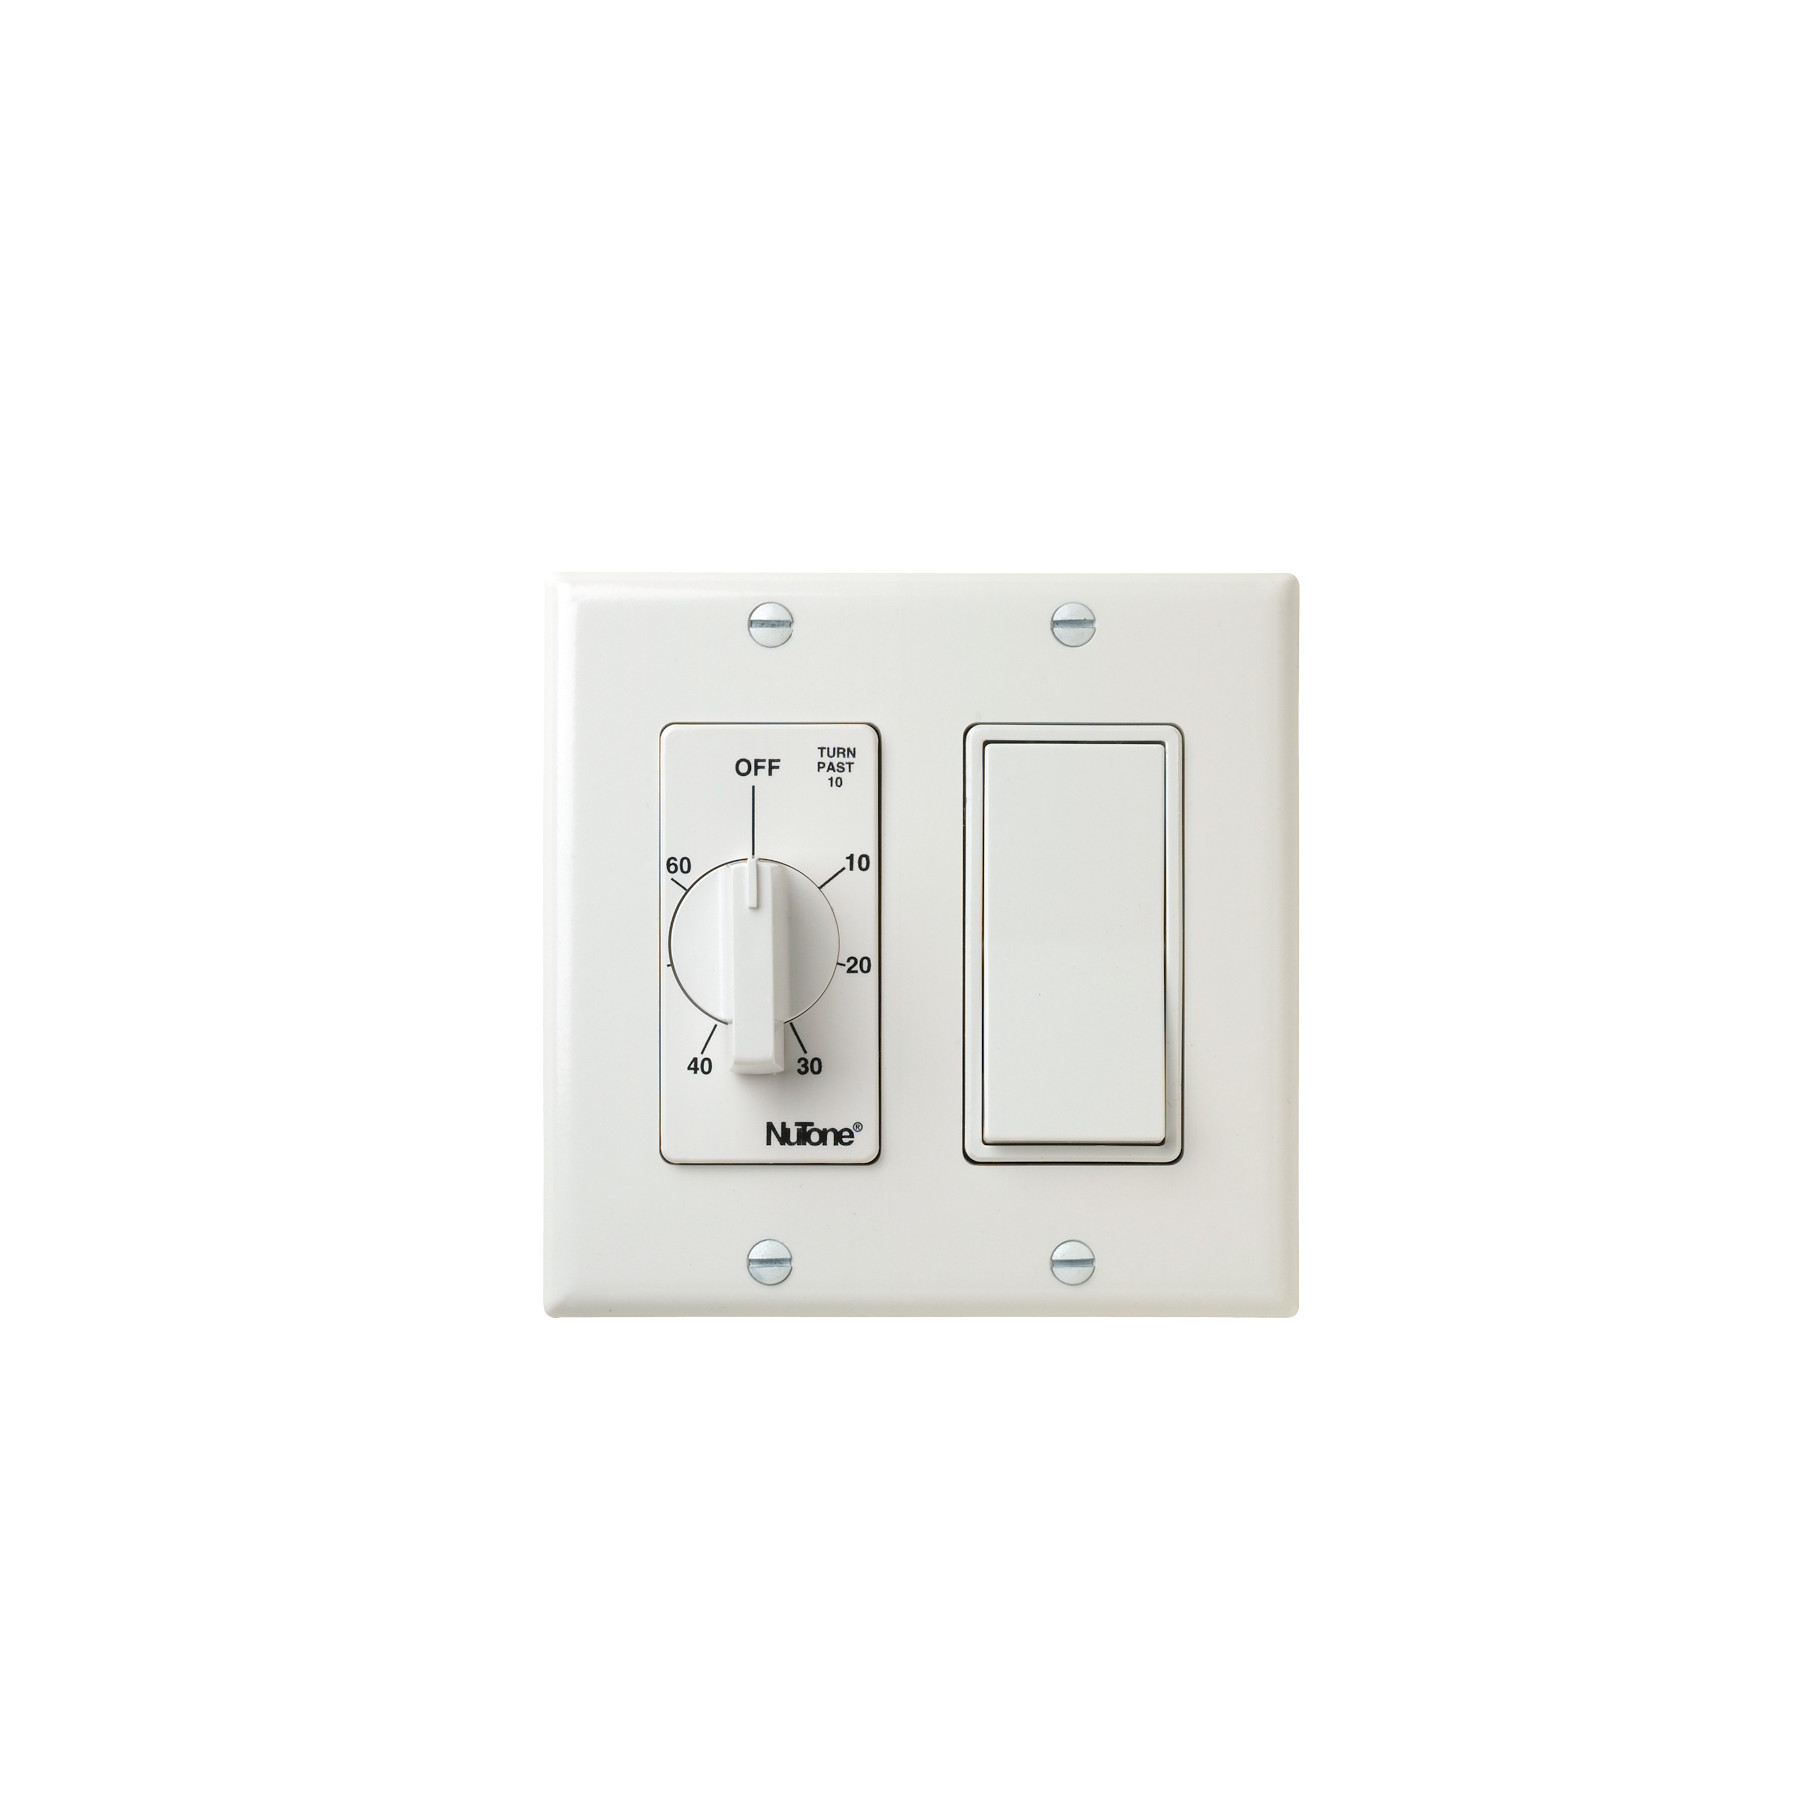 60 Min. Timer/1 On/Off Switch (White)